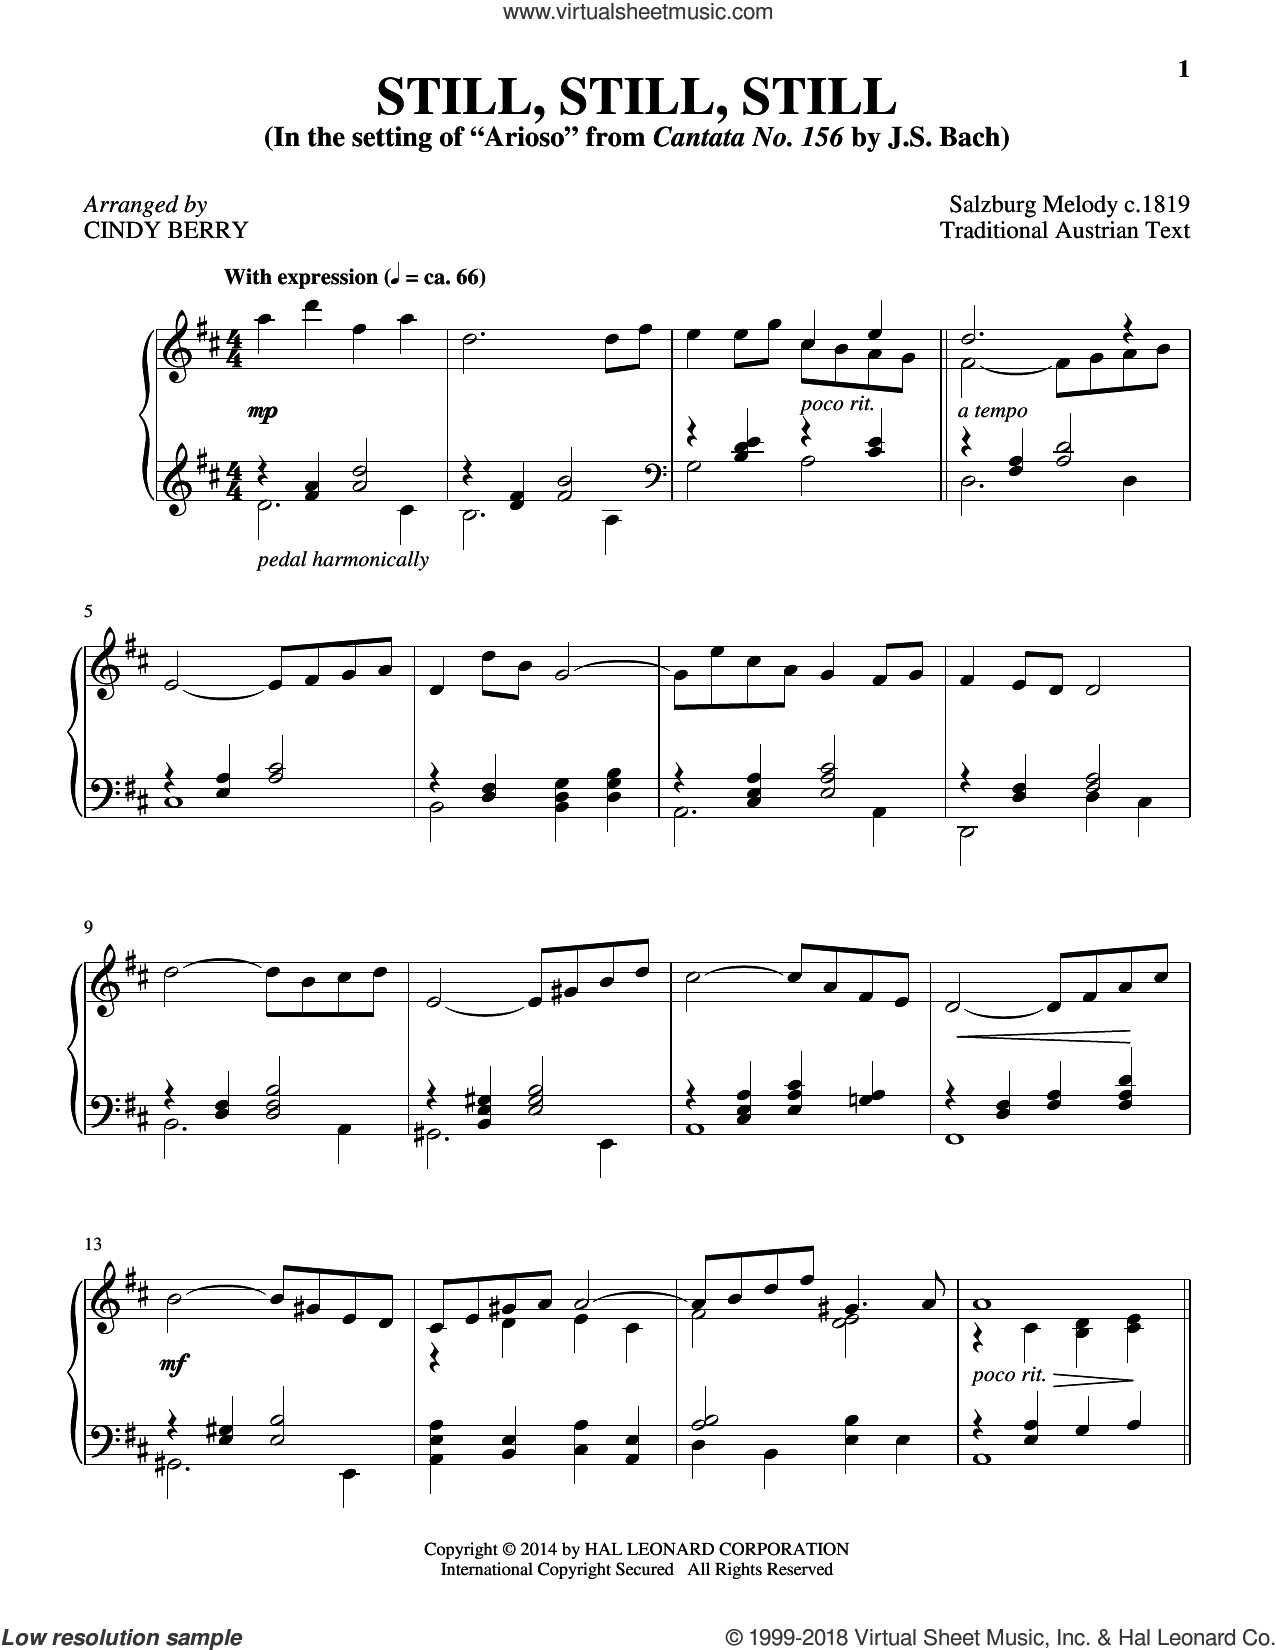 Still, Still, Still sheet music for piano solo